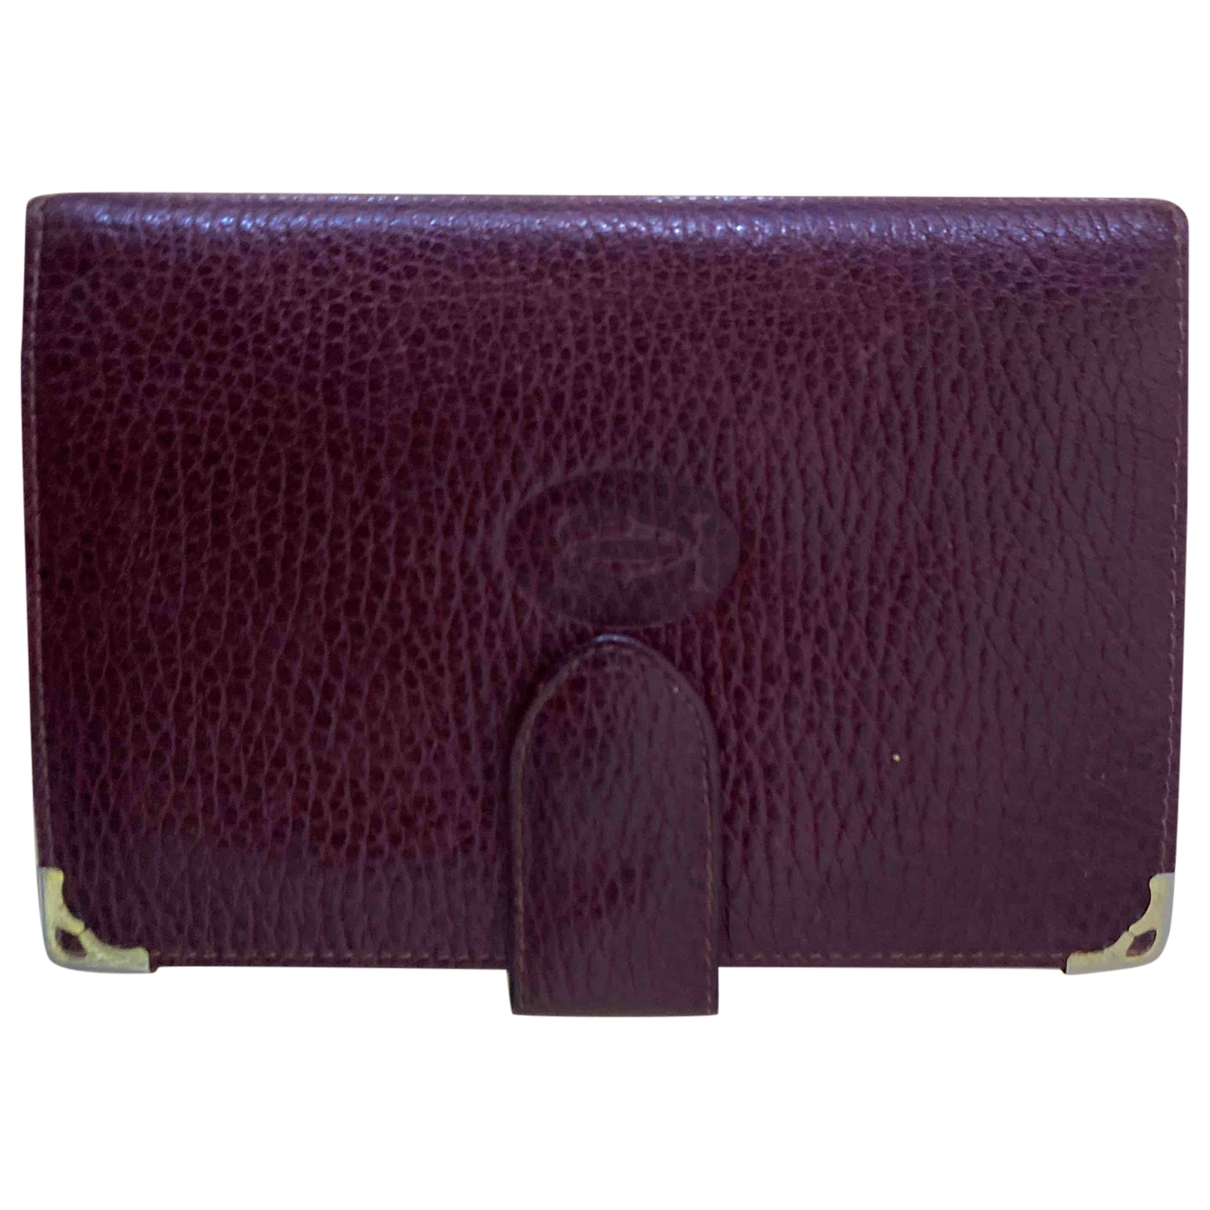 Cartier \N Burgundy Leather wallet for Women \N